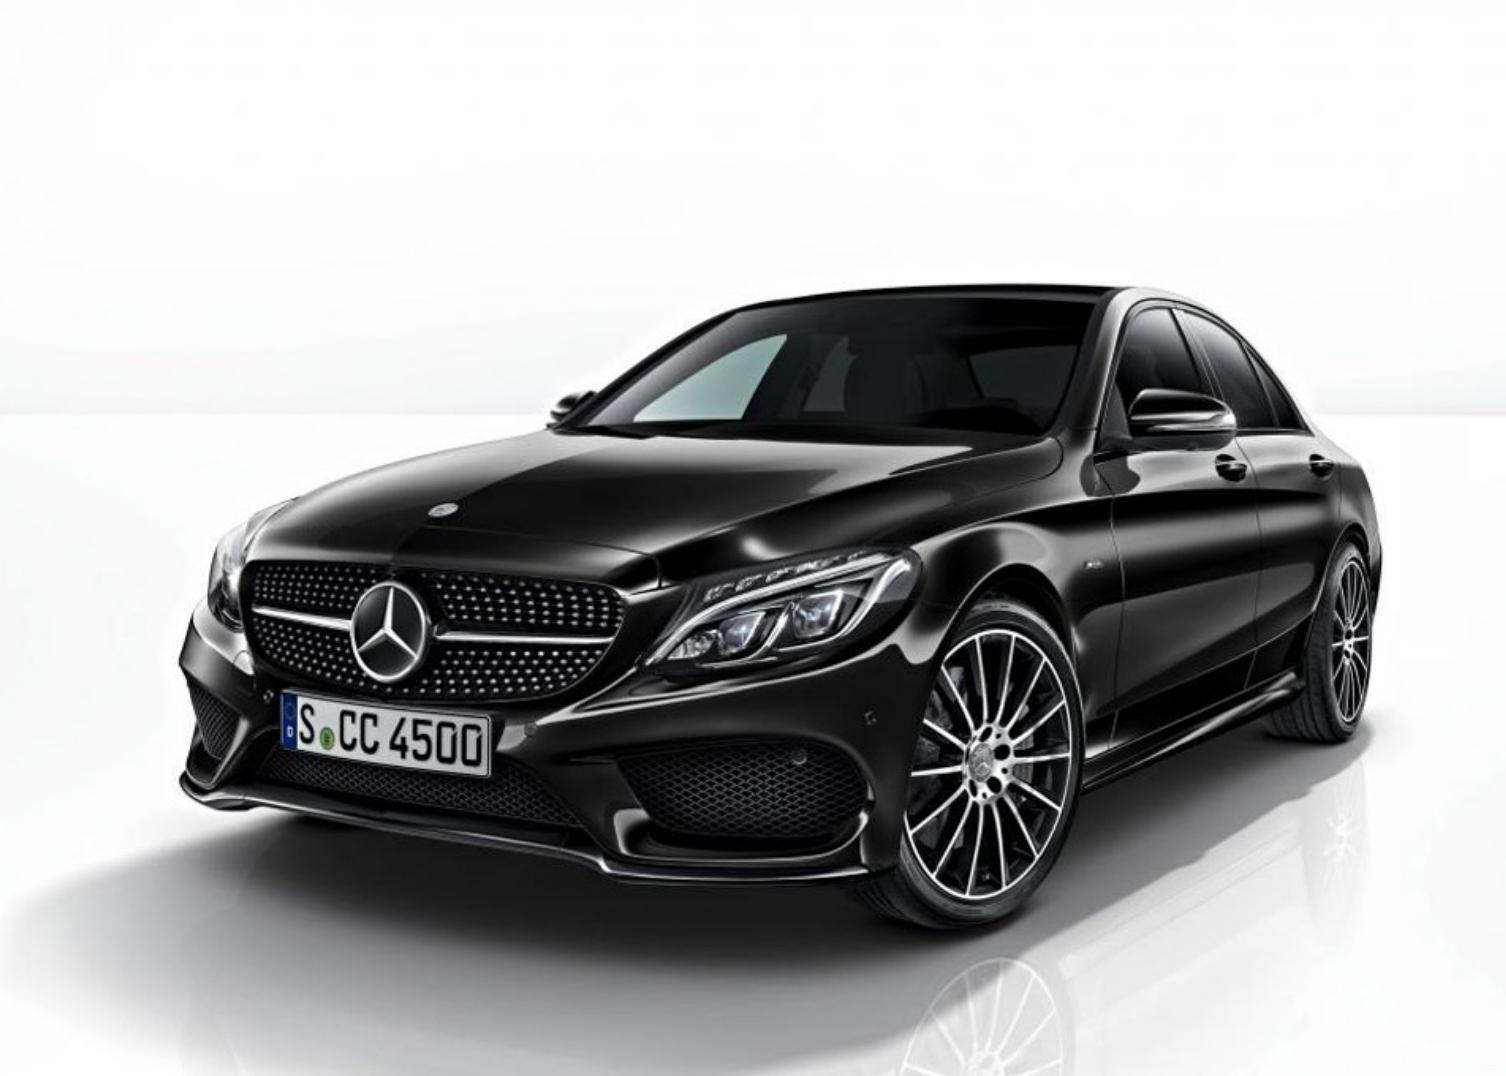 Mercedes-Benz C-Class Седан (W205) AMG C 43 4MATIC